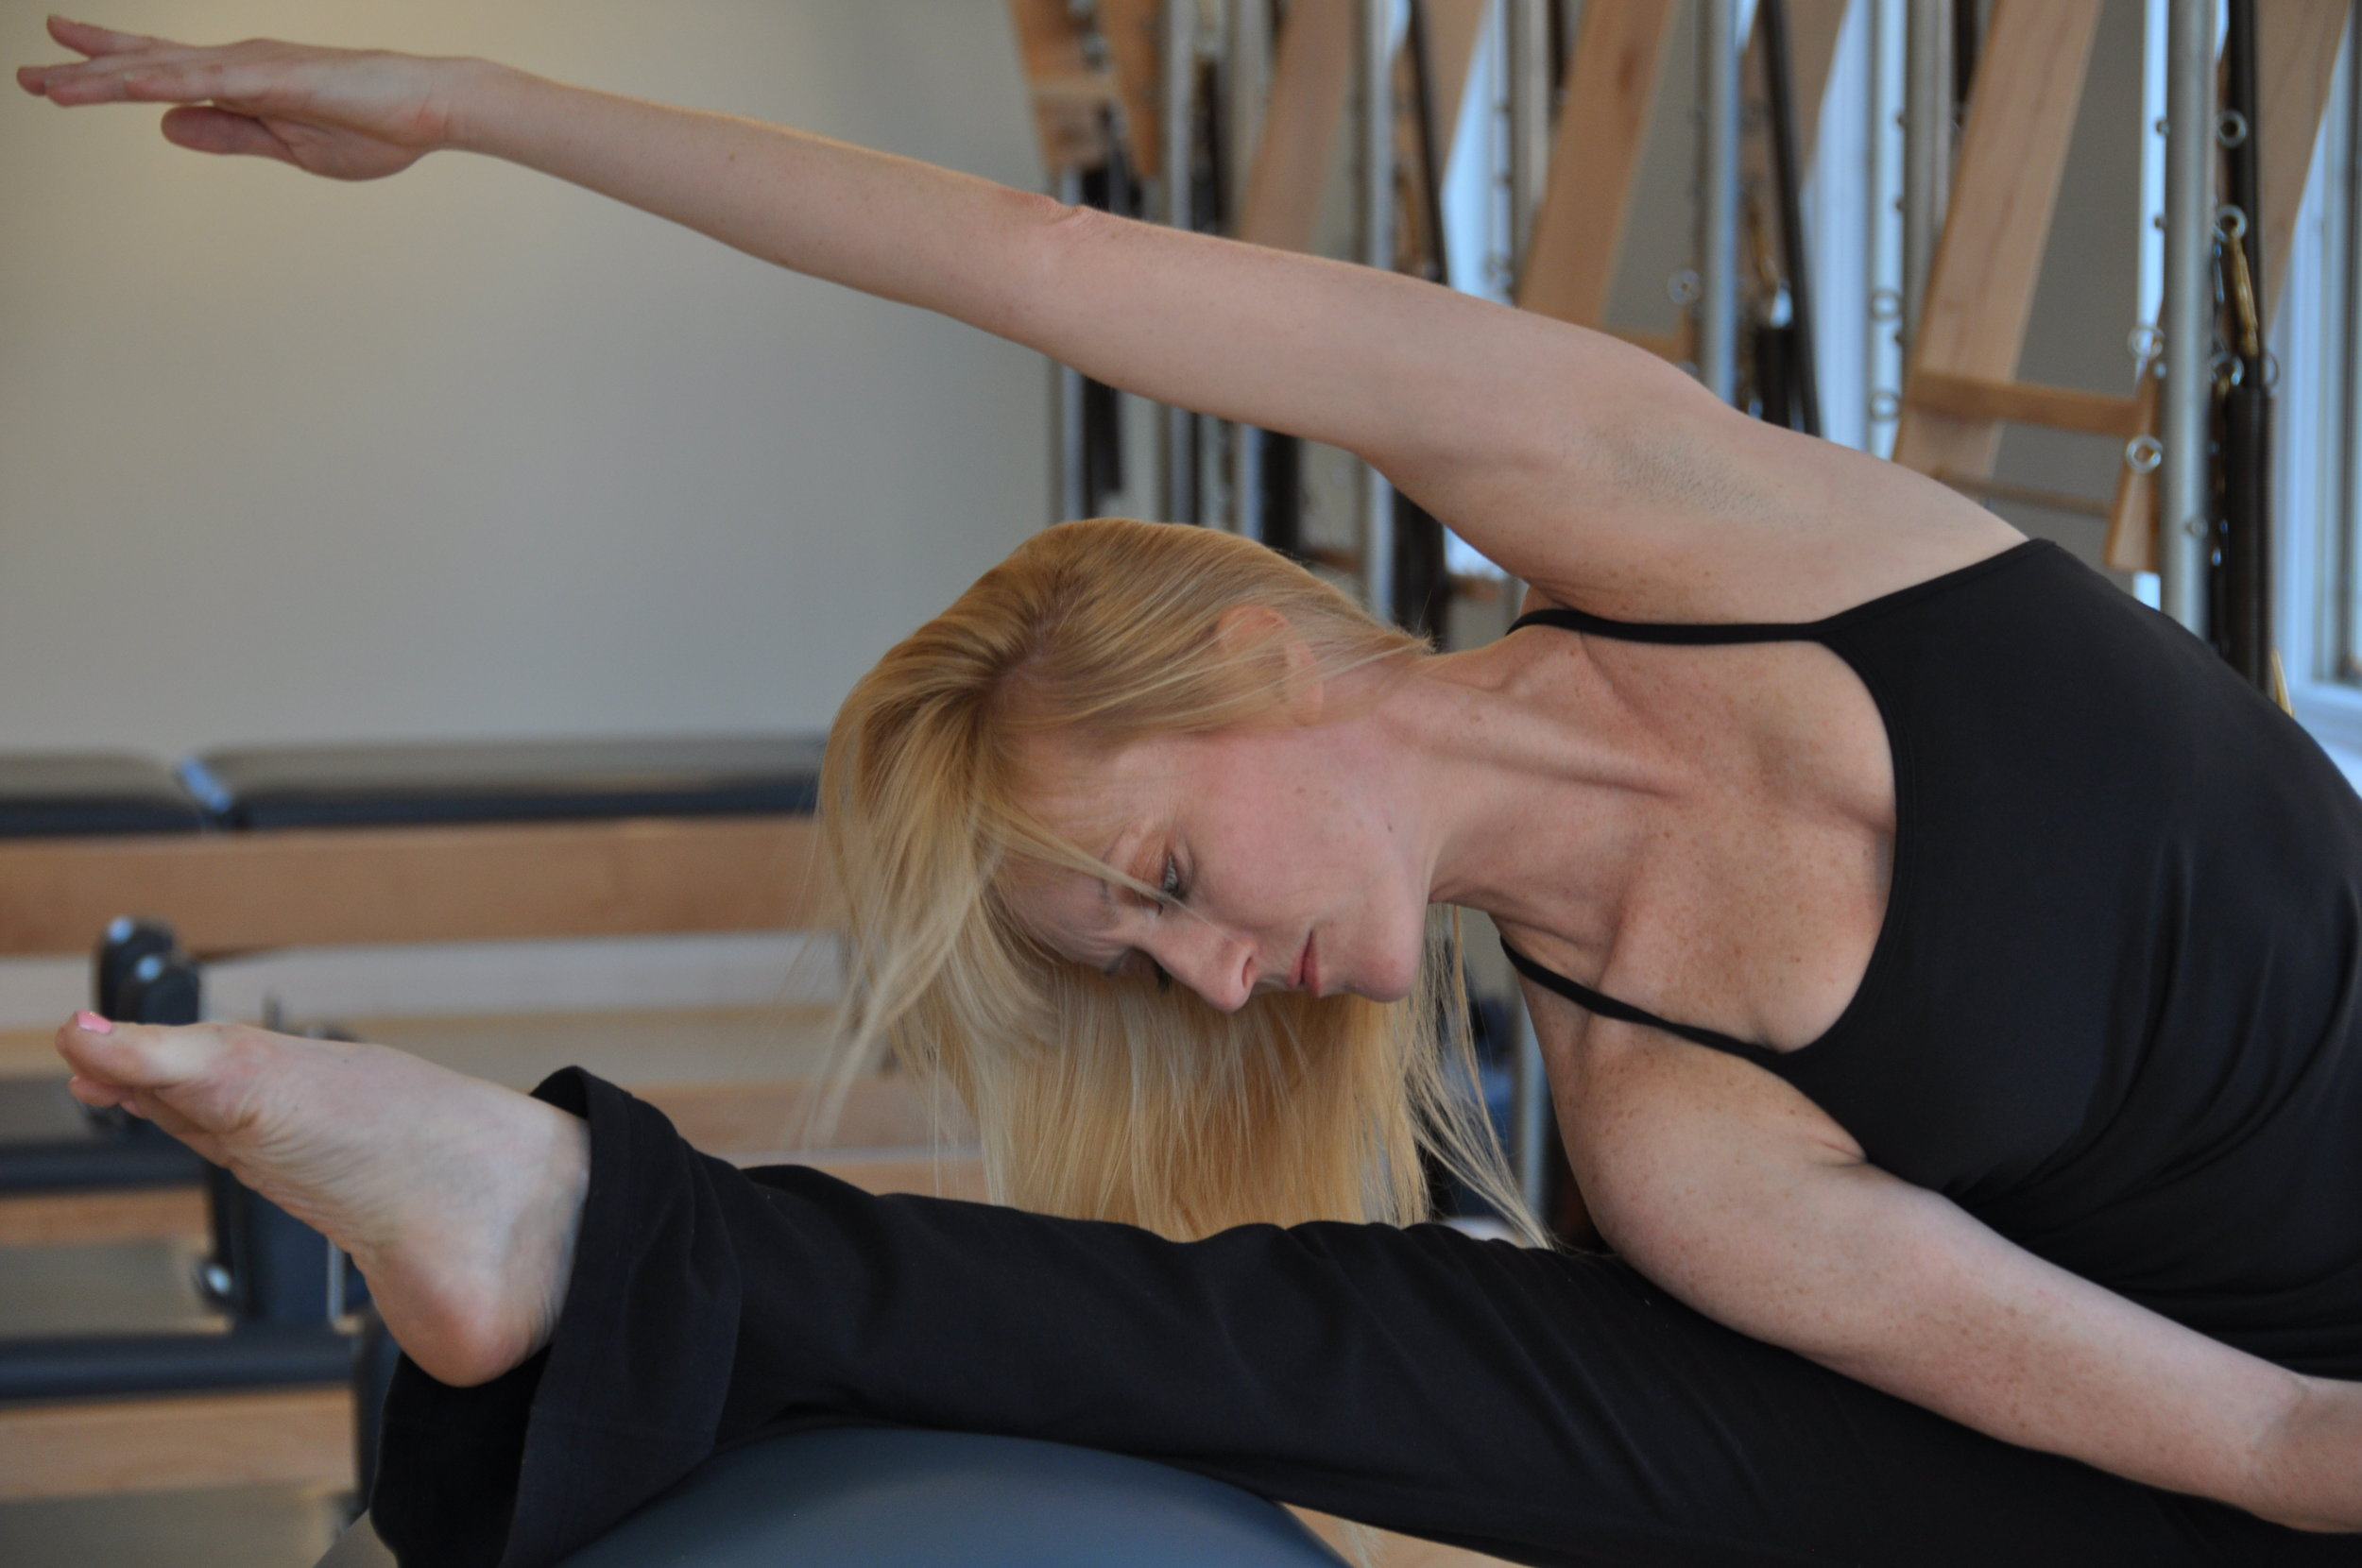 Our Method - Creative in its methodology while maintaining the integrity and the purity of the Joseph Pilates method, Georgetown Pilates approaches movement as preventative medicine to avoid injury, rehabilitate the body, and to enhance and prolong body strength, stamina and mobility.Many students come to us after working in group fitness settings to re-educate and help heal imbalances in the body. At Georgetown Pilates, we start by building a strong foundation and creating awareness of movement within your individual body to rehab and/or prevent injury.Focused on the goal of creating symmetry of body and mind, every new client is given an assessment and movement trial on the Pilates reformer by owner, Heather Perry or a member of her personally trained team of instructors. Once a client has been read and accessed, a unique plan custom built for the individual is put into place to address specific health goals of the client as well as correct any imbalances in the body to improve overall motor functions.